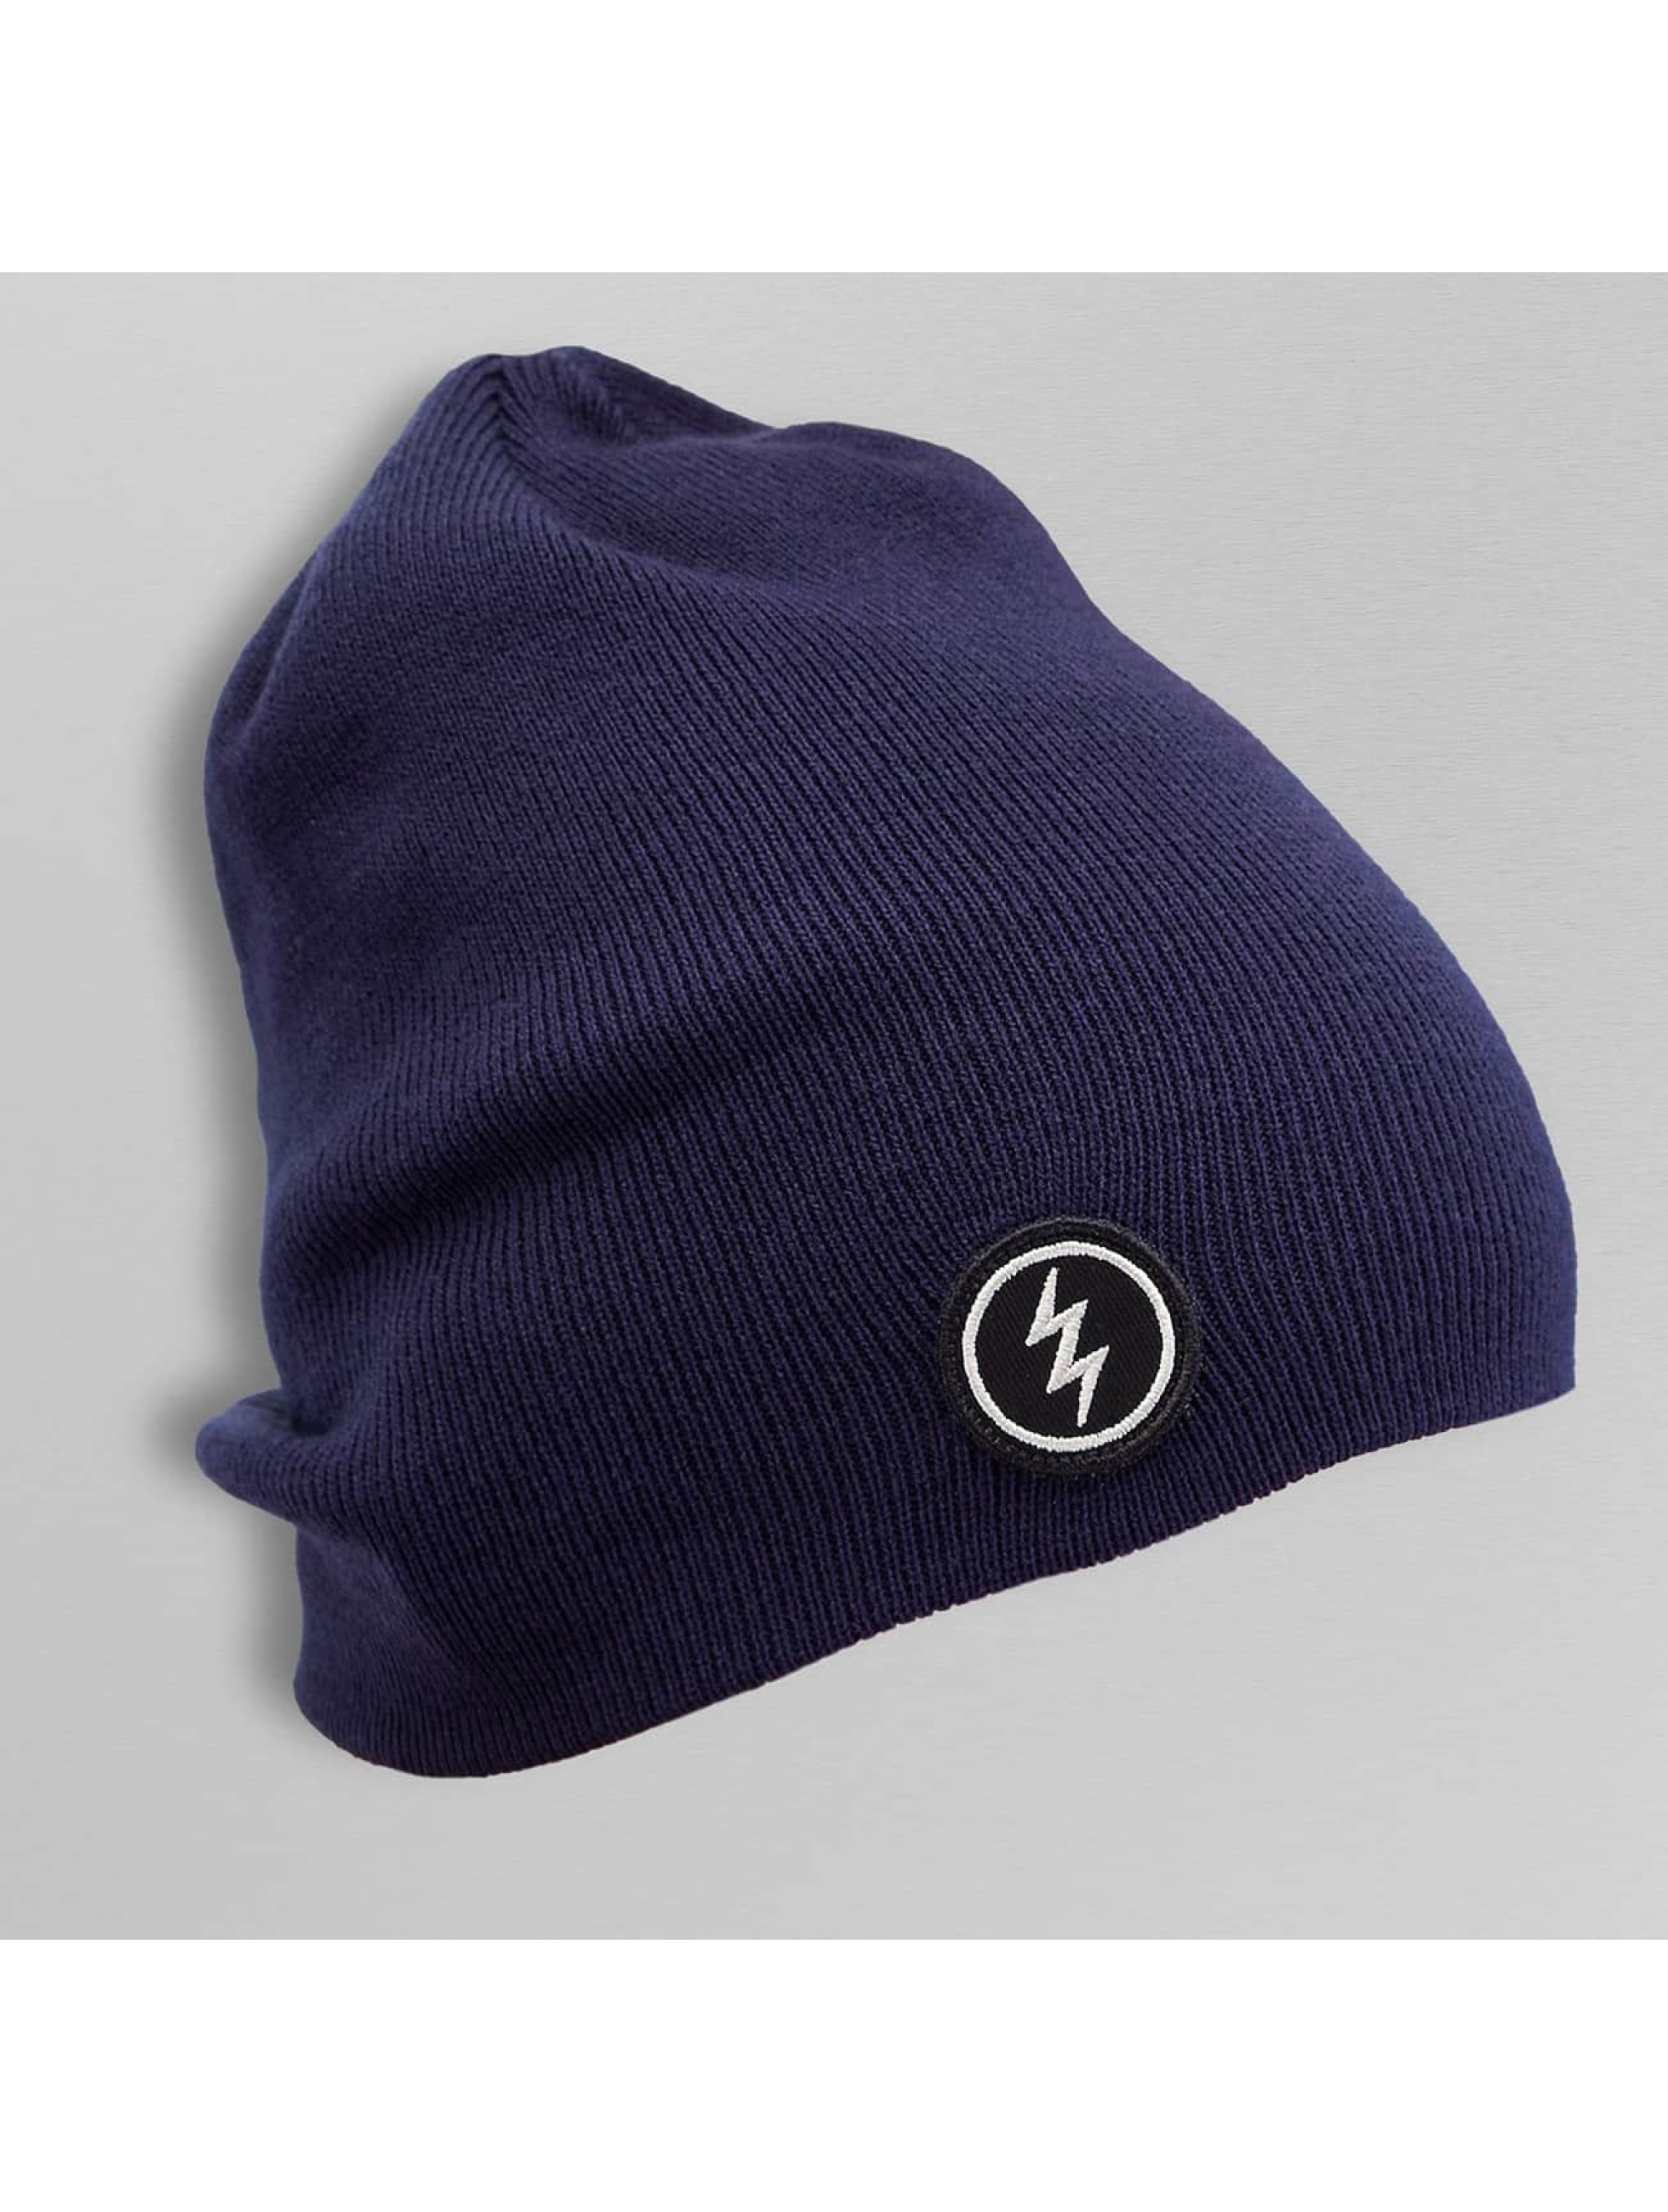 Electric Bonnet CO. bleu